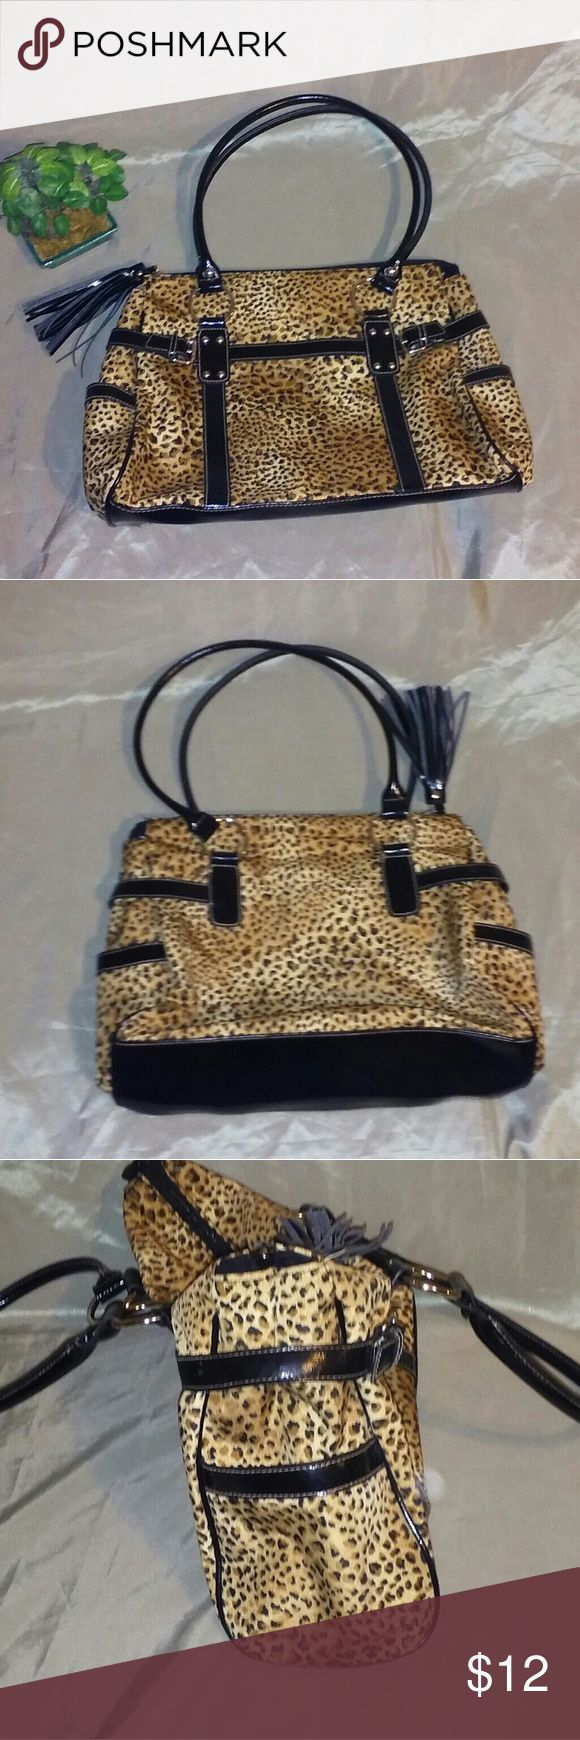 Leopard print bag Stylish leopard print bag that's hardly used and is in excellent condition. Bags Shoulder Bags